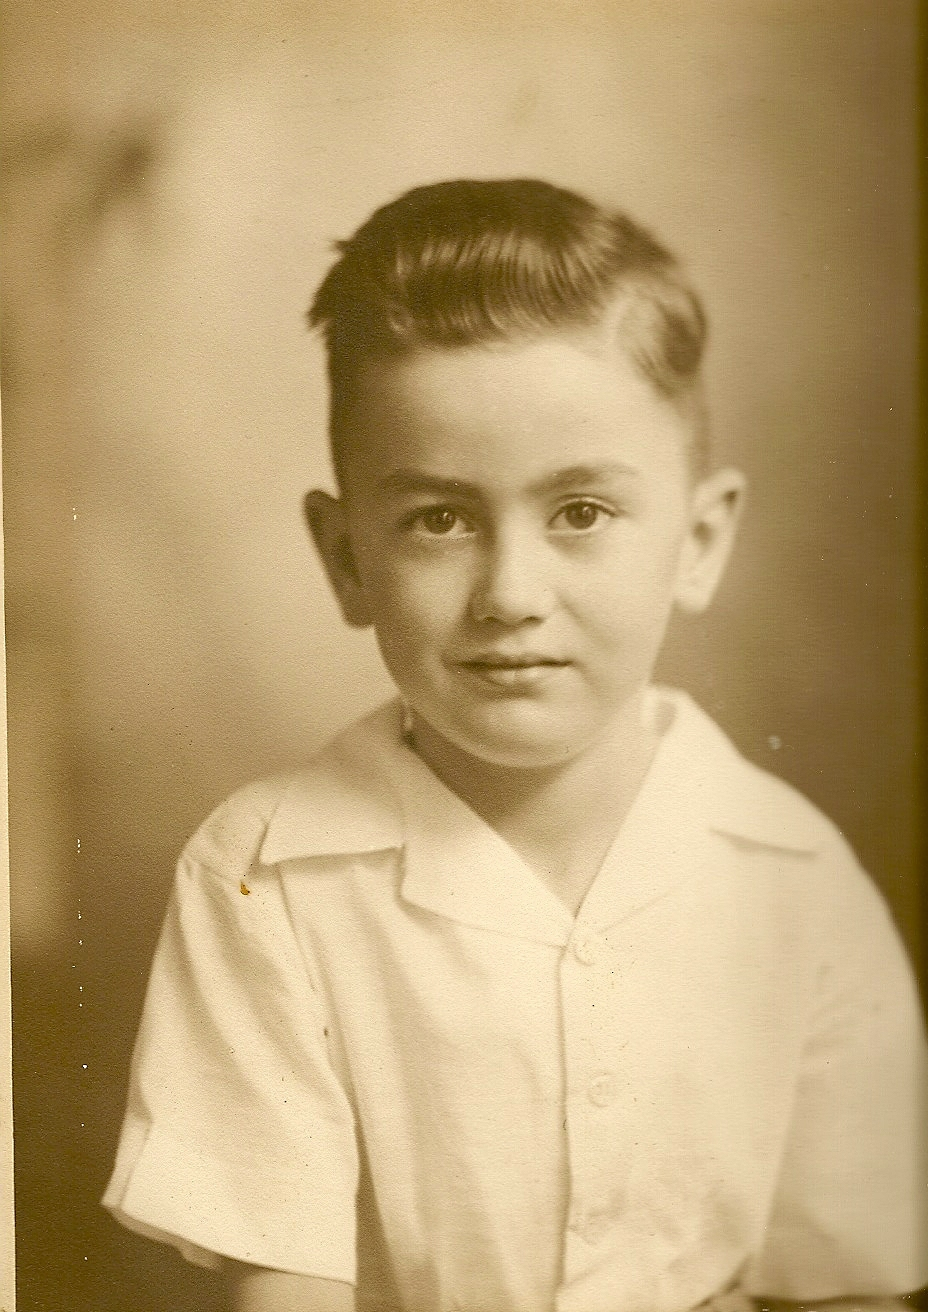 Truman Hubbard Copeland in Dallas,TX young boy